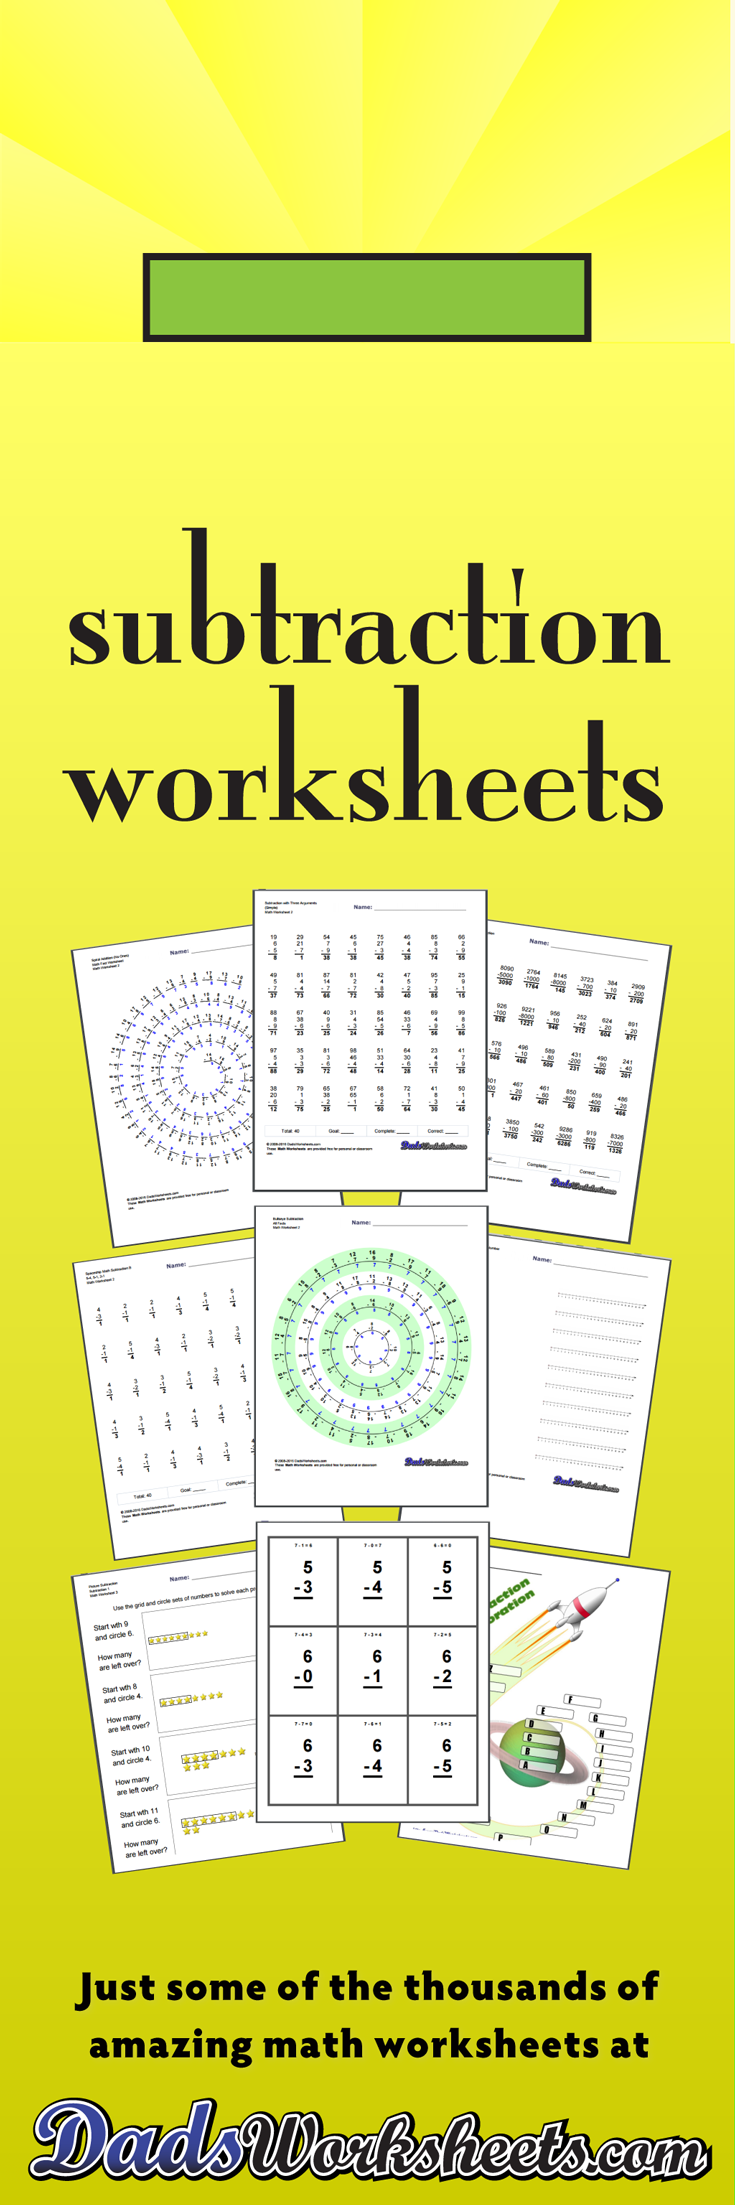 worksheet Math Subtraction Problems 464 subtraction worksheets for you to print right now worksheets